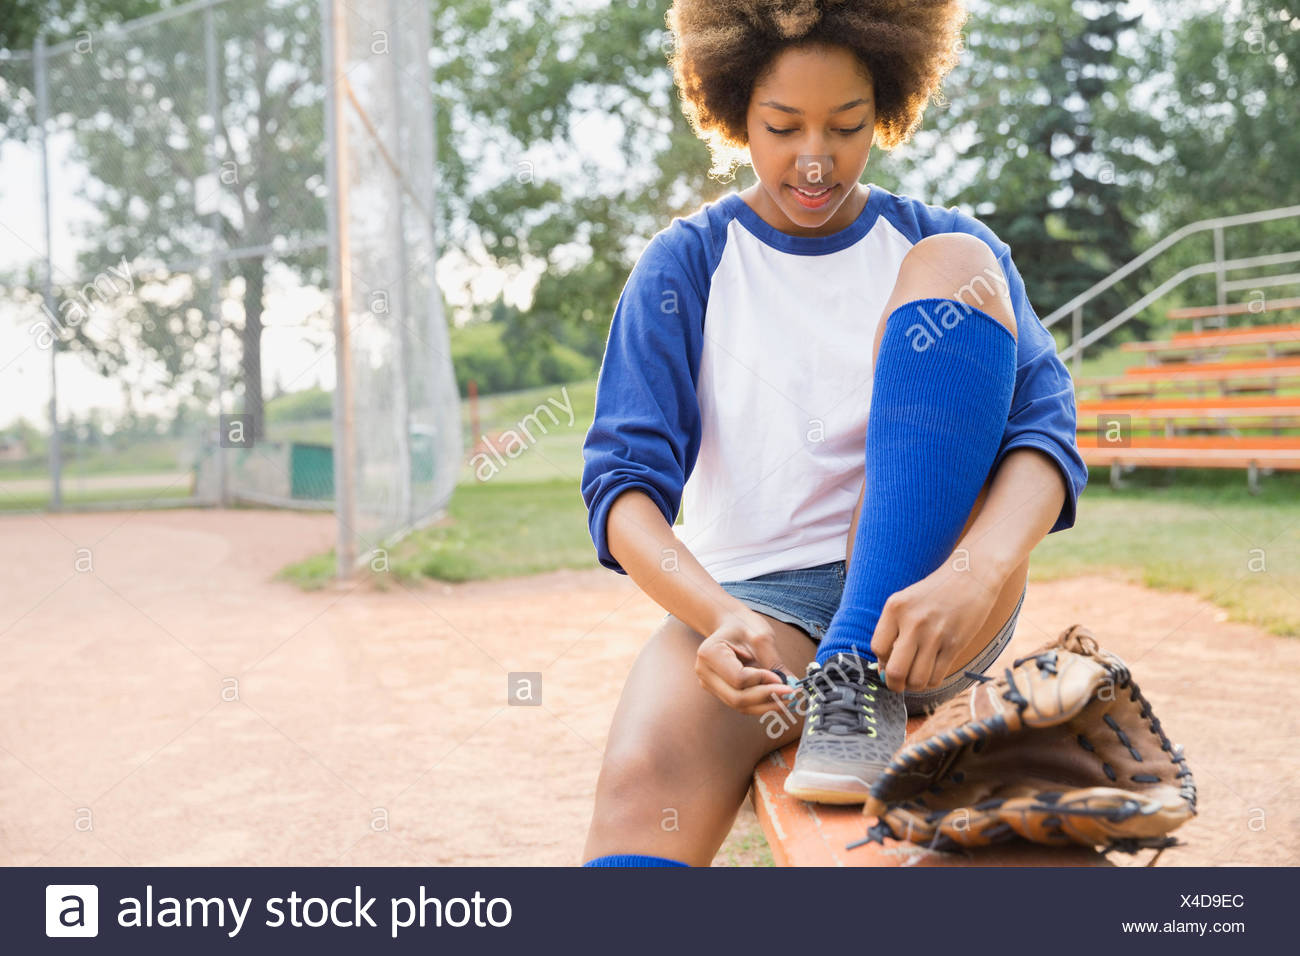 Baseball player tying shoe on field - Stock Image